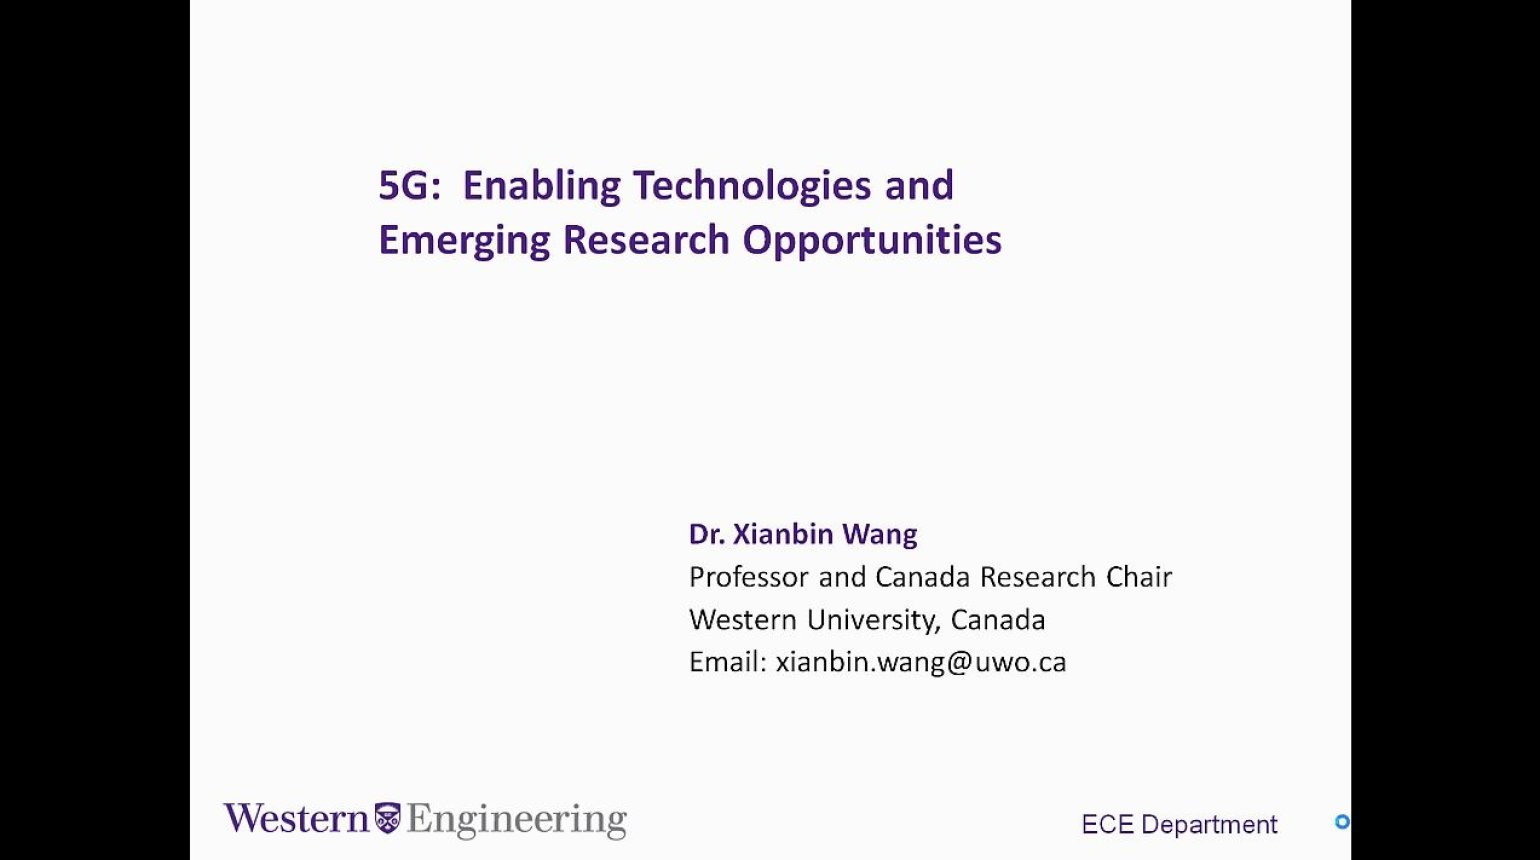 Video - 5G Enabling Technologies and Emerging Research Opportunities